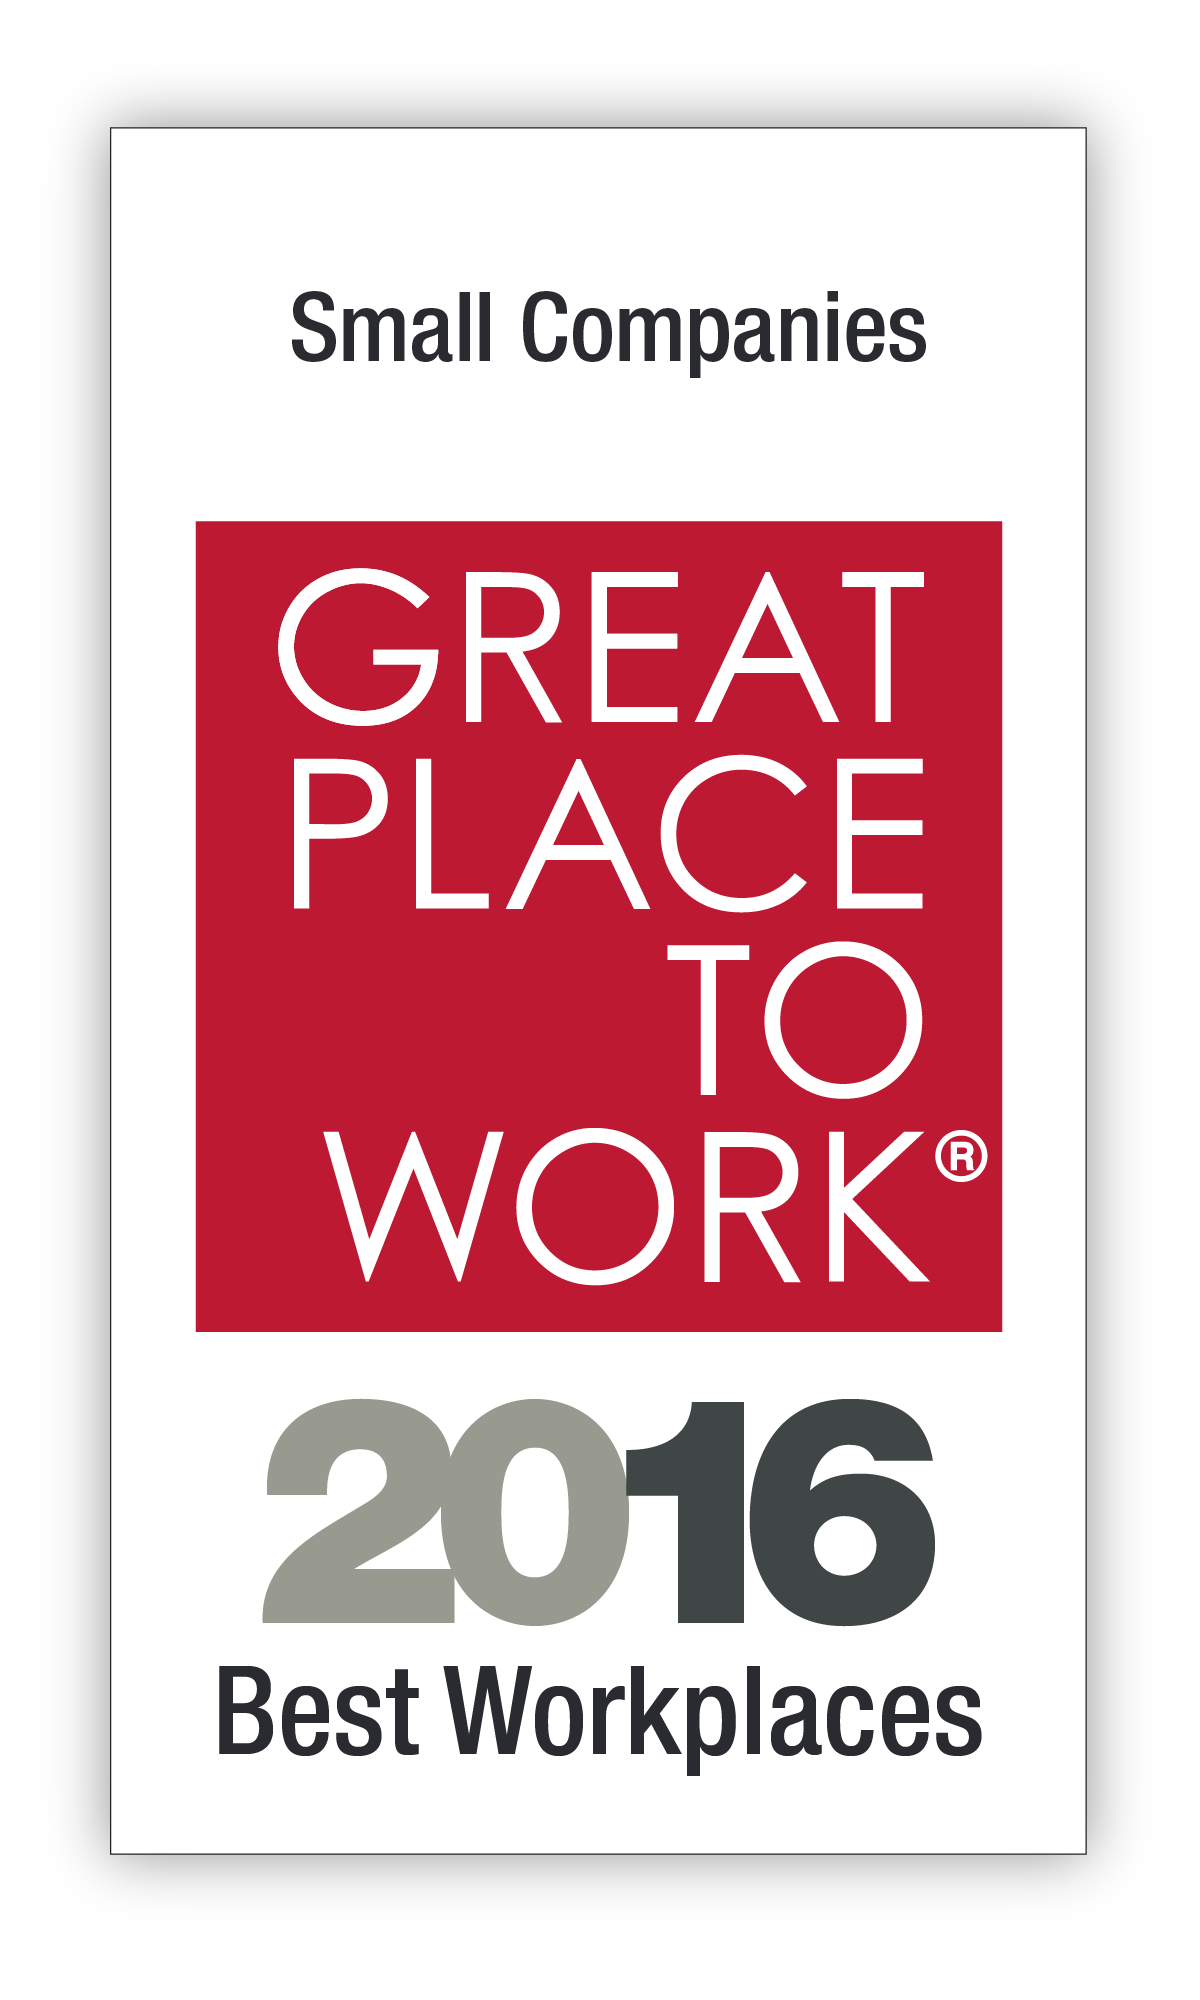 Best Small Workplaces 2016 Image